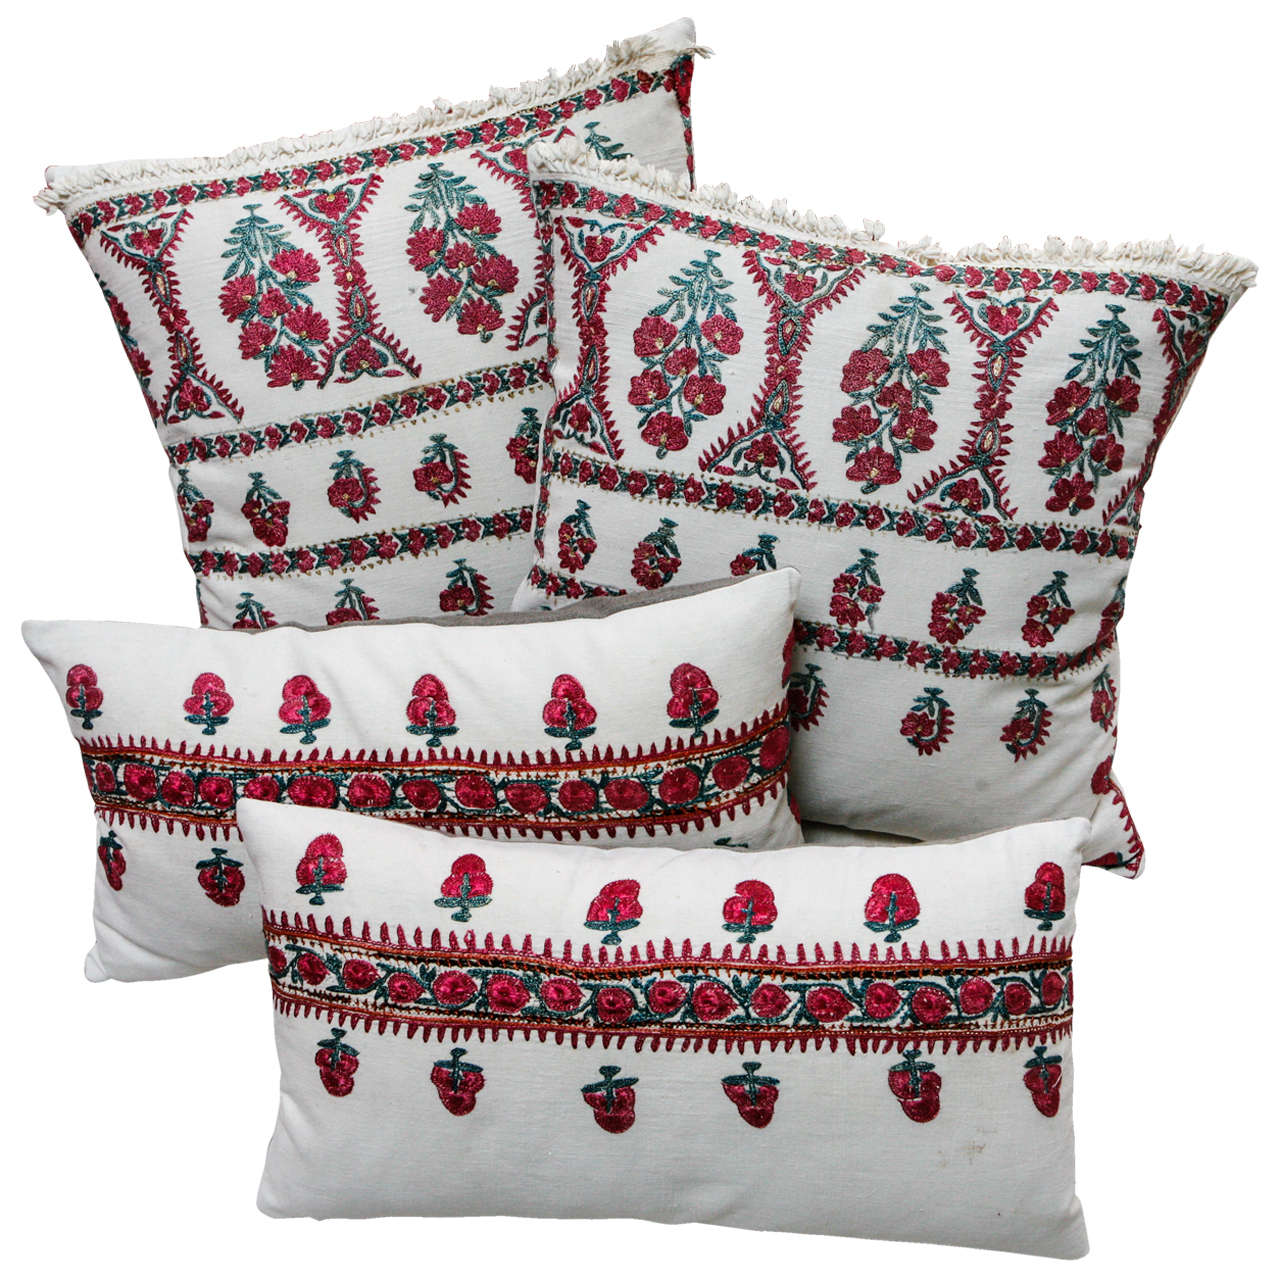 Embroidered Moroccan Pillows. at 1stdibs